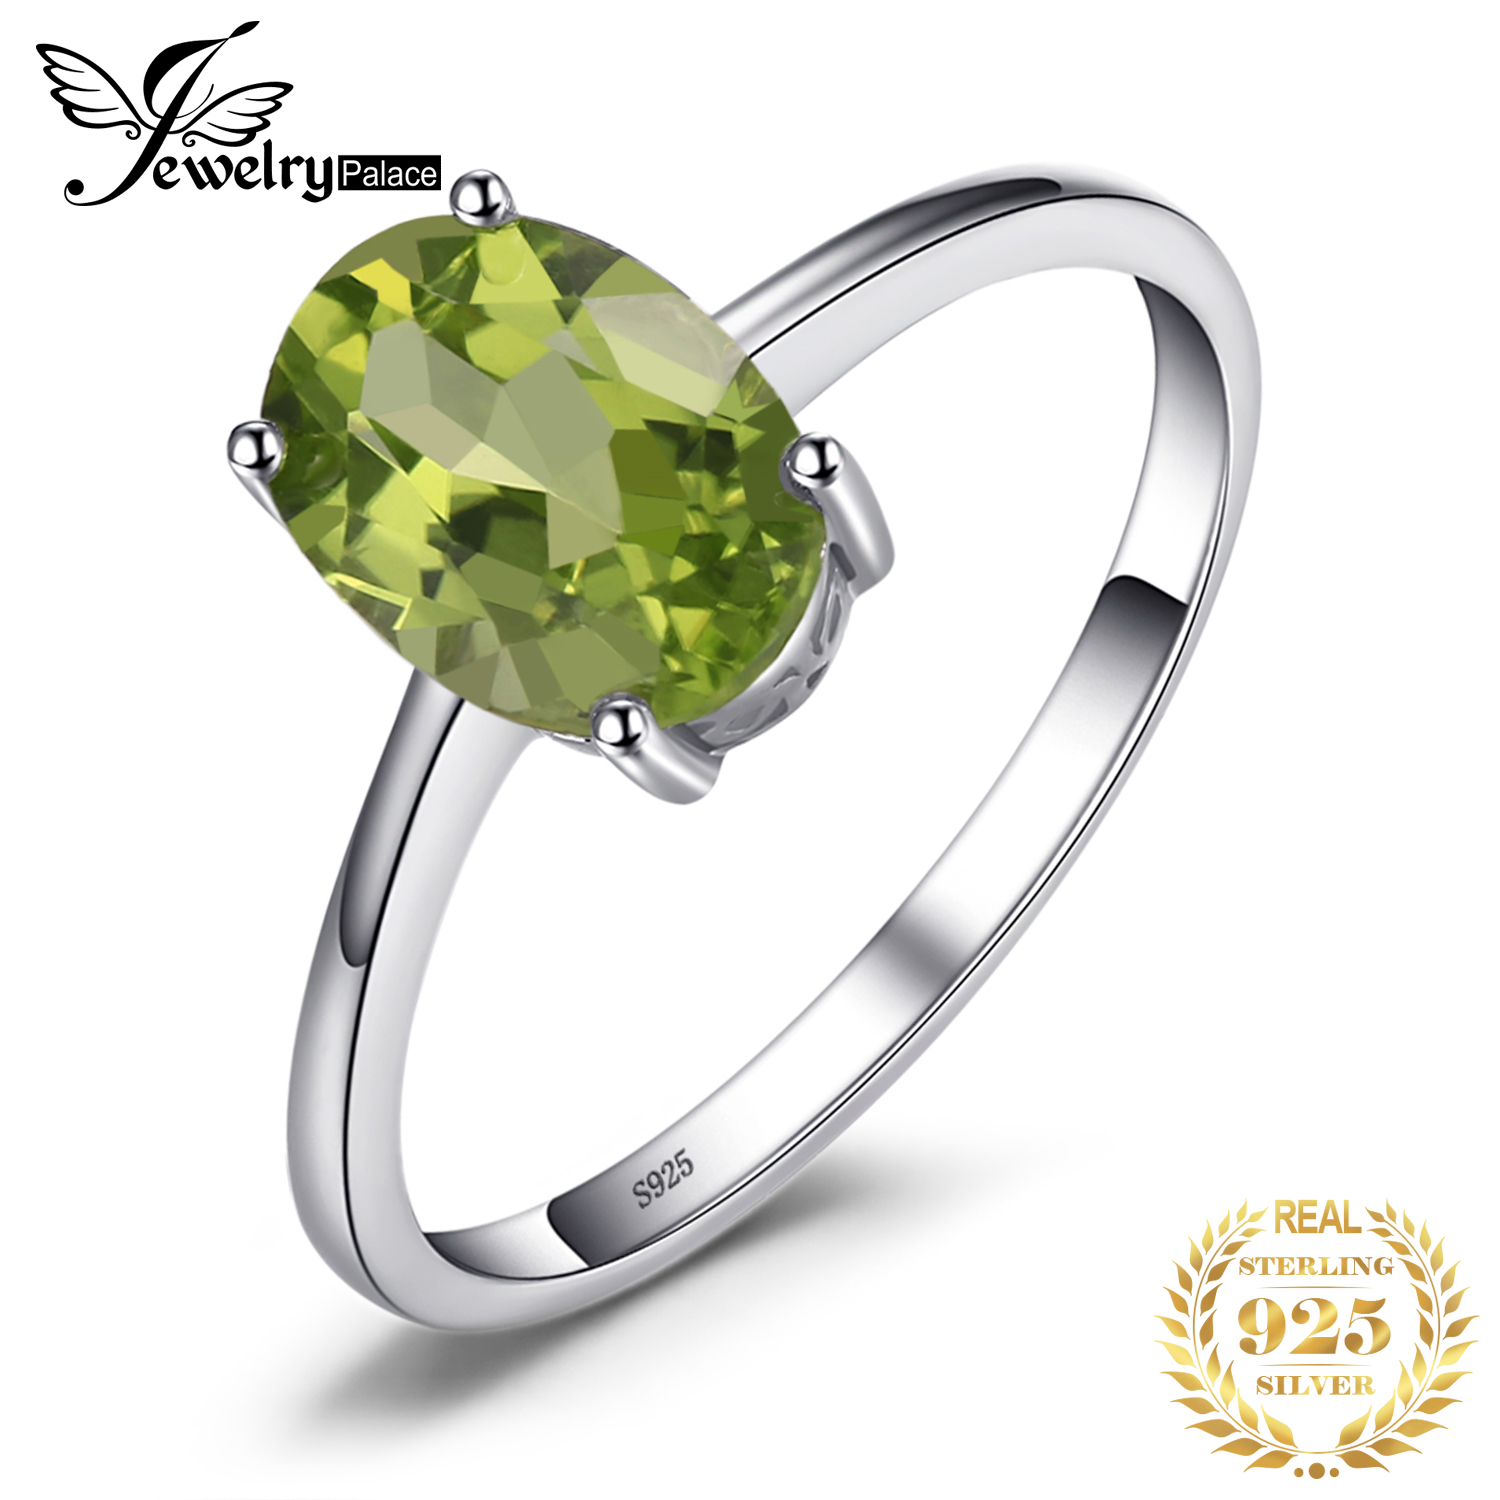 JewelryPalace Genuine Peridot Ring Solitaire 925 Sterling Silver Rings For Women Engagement Ring Silver 925 Gemstones Jewelry